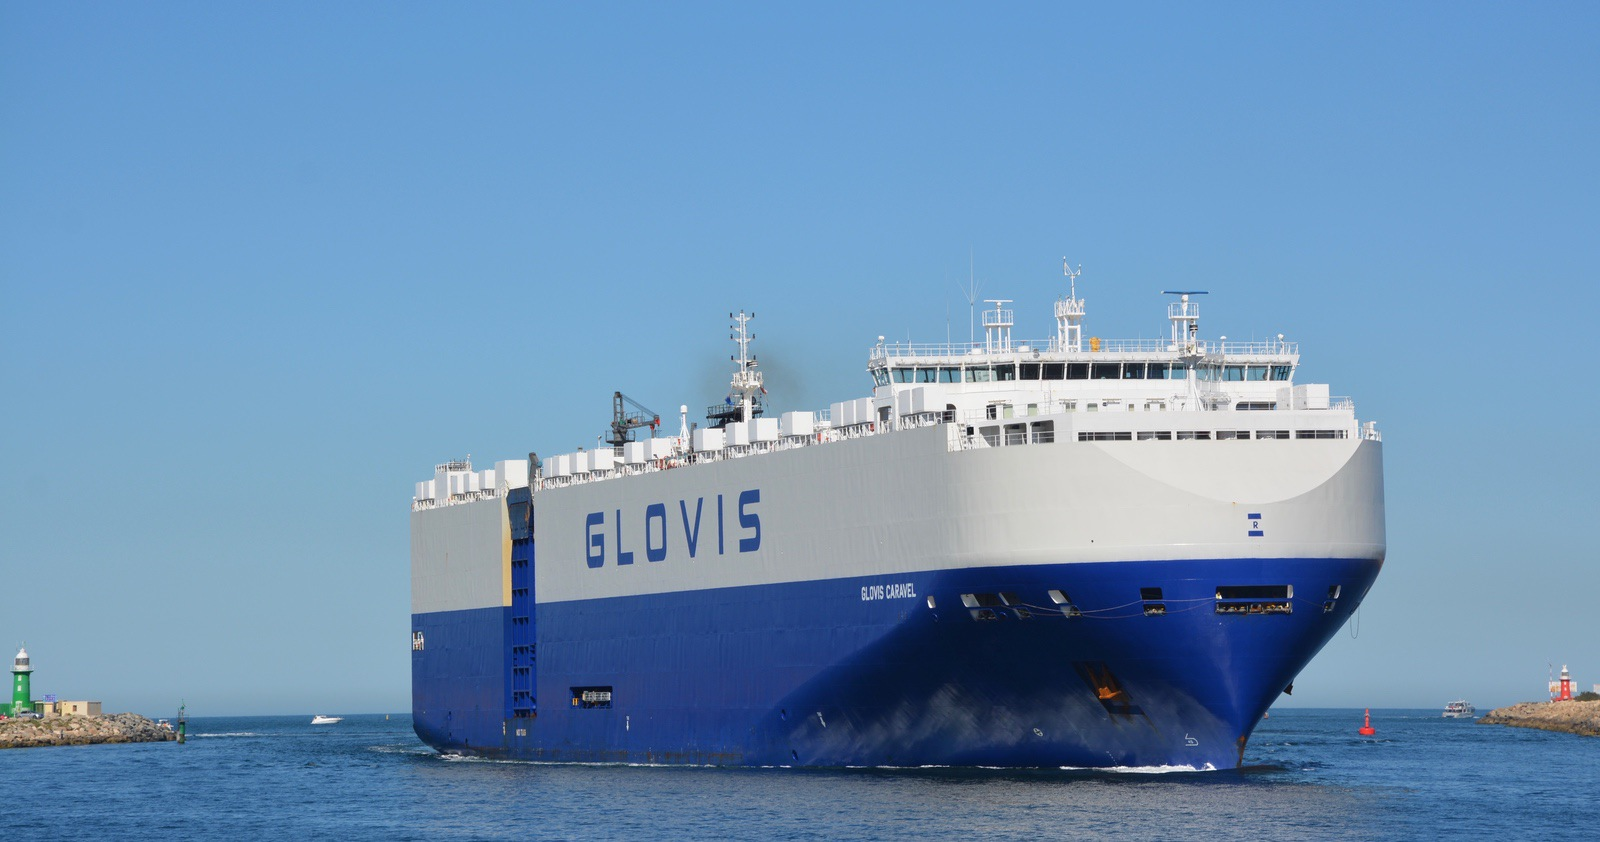 The Glovis visiting Freo